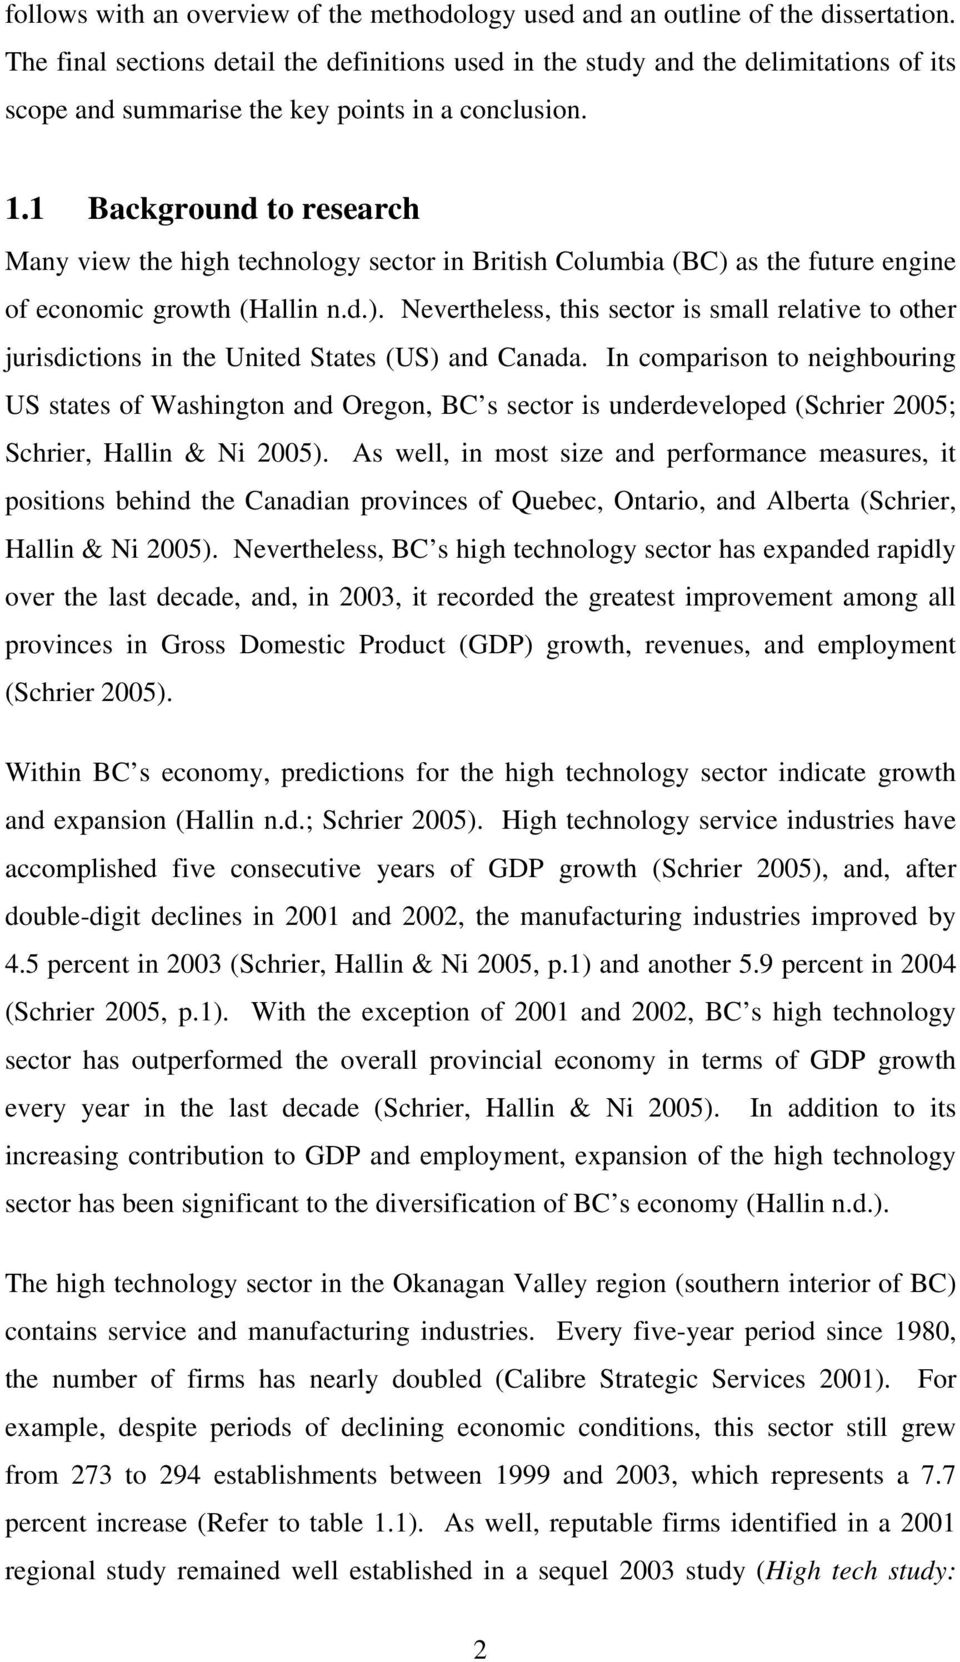 1 Background to research Many view the high technology sector in British Columbia (BC) as the future engine of economic growth (Hallin n.d.). Nevertheless, this sector is small relative to other jurisdictions in the United States (US) and Canada.